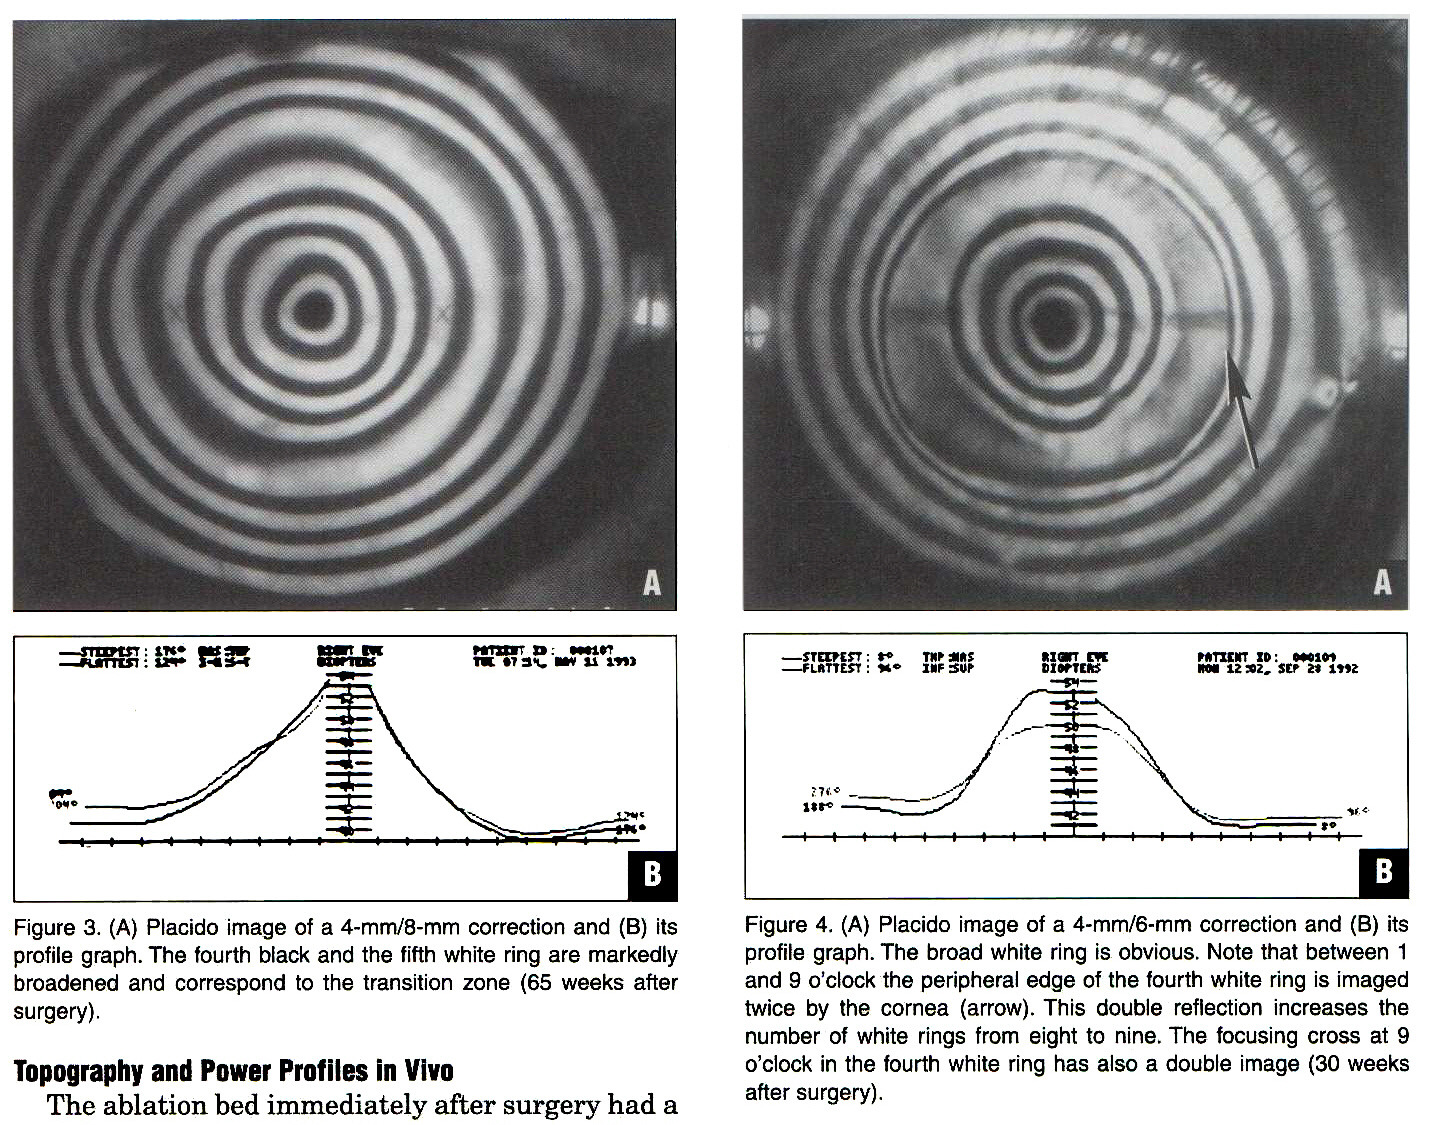 Figure 3. (A) Placido image of a 4-mm/8-mm correction and (B) its profile graph. The fourth black and the fifth white ring are markedly broadened and correspond to the transition zone (65 weeks after surgery).Figure 4. (A) Placido image of a 4-mm/6-mm correction and (B) its profile graph. The broad white ring is obvious. Note that between 1 and 9 o'clock the peripheral edge of the fourth white ring is imaged twice by the cornea (arrow). This double reflection increases the number of white rings from eight to nine. The focusing cross at 9 o'clock in the fourth white ring has also a double image (30 weeks after surgery).